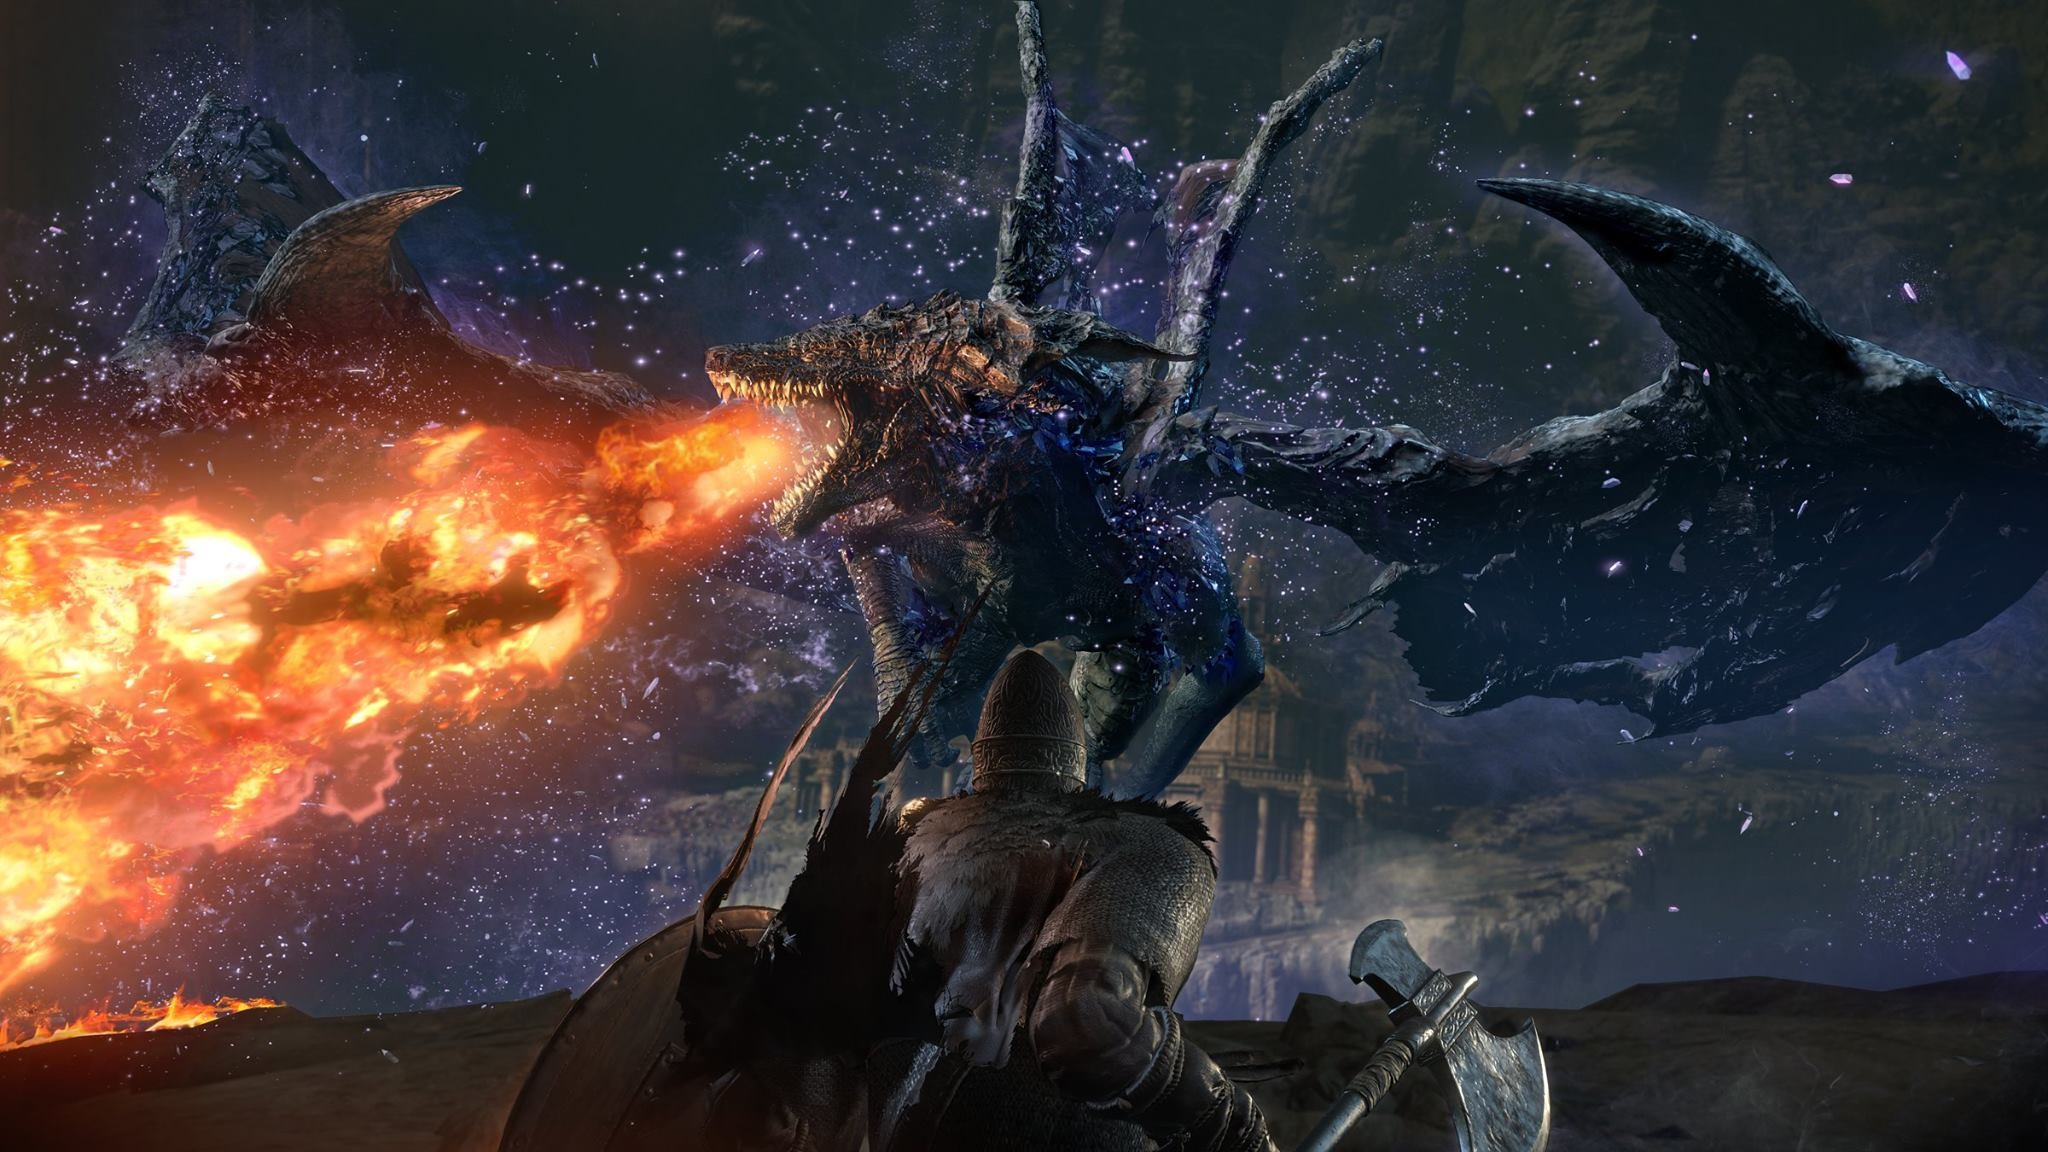 Dark Souls 3 Ringed City Wallpaper Posted By Christopher Sellers